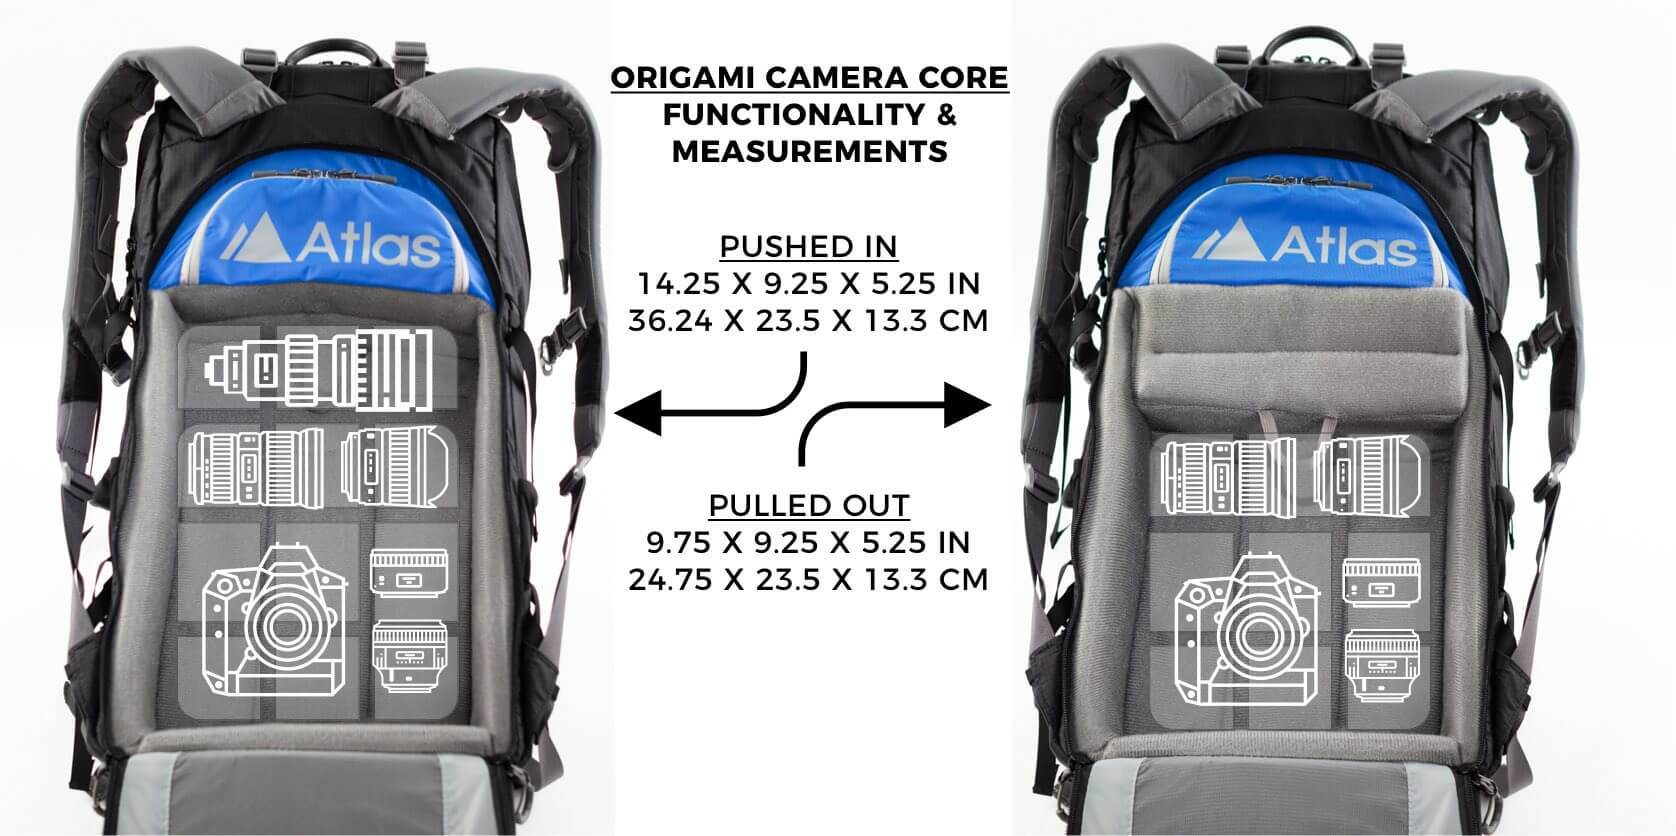 The useful function of the origami system allowing you to choose between extra camera gear or storage.